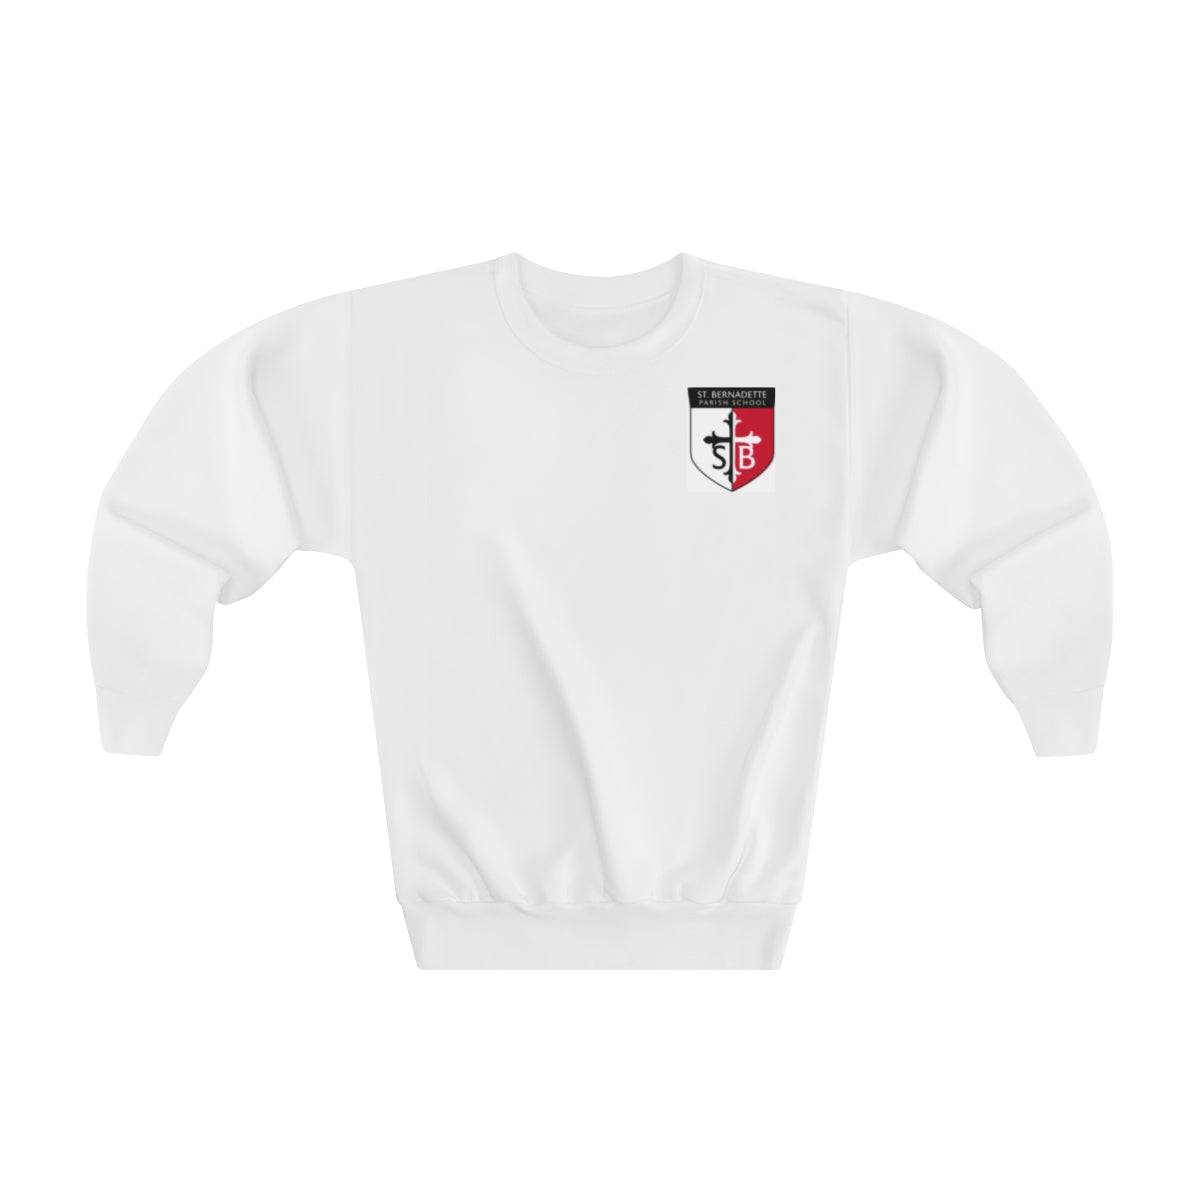 St Bernadette Youth Crewneck Sweatshirt